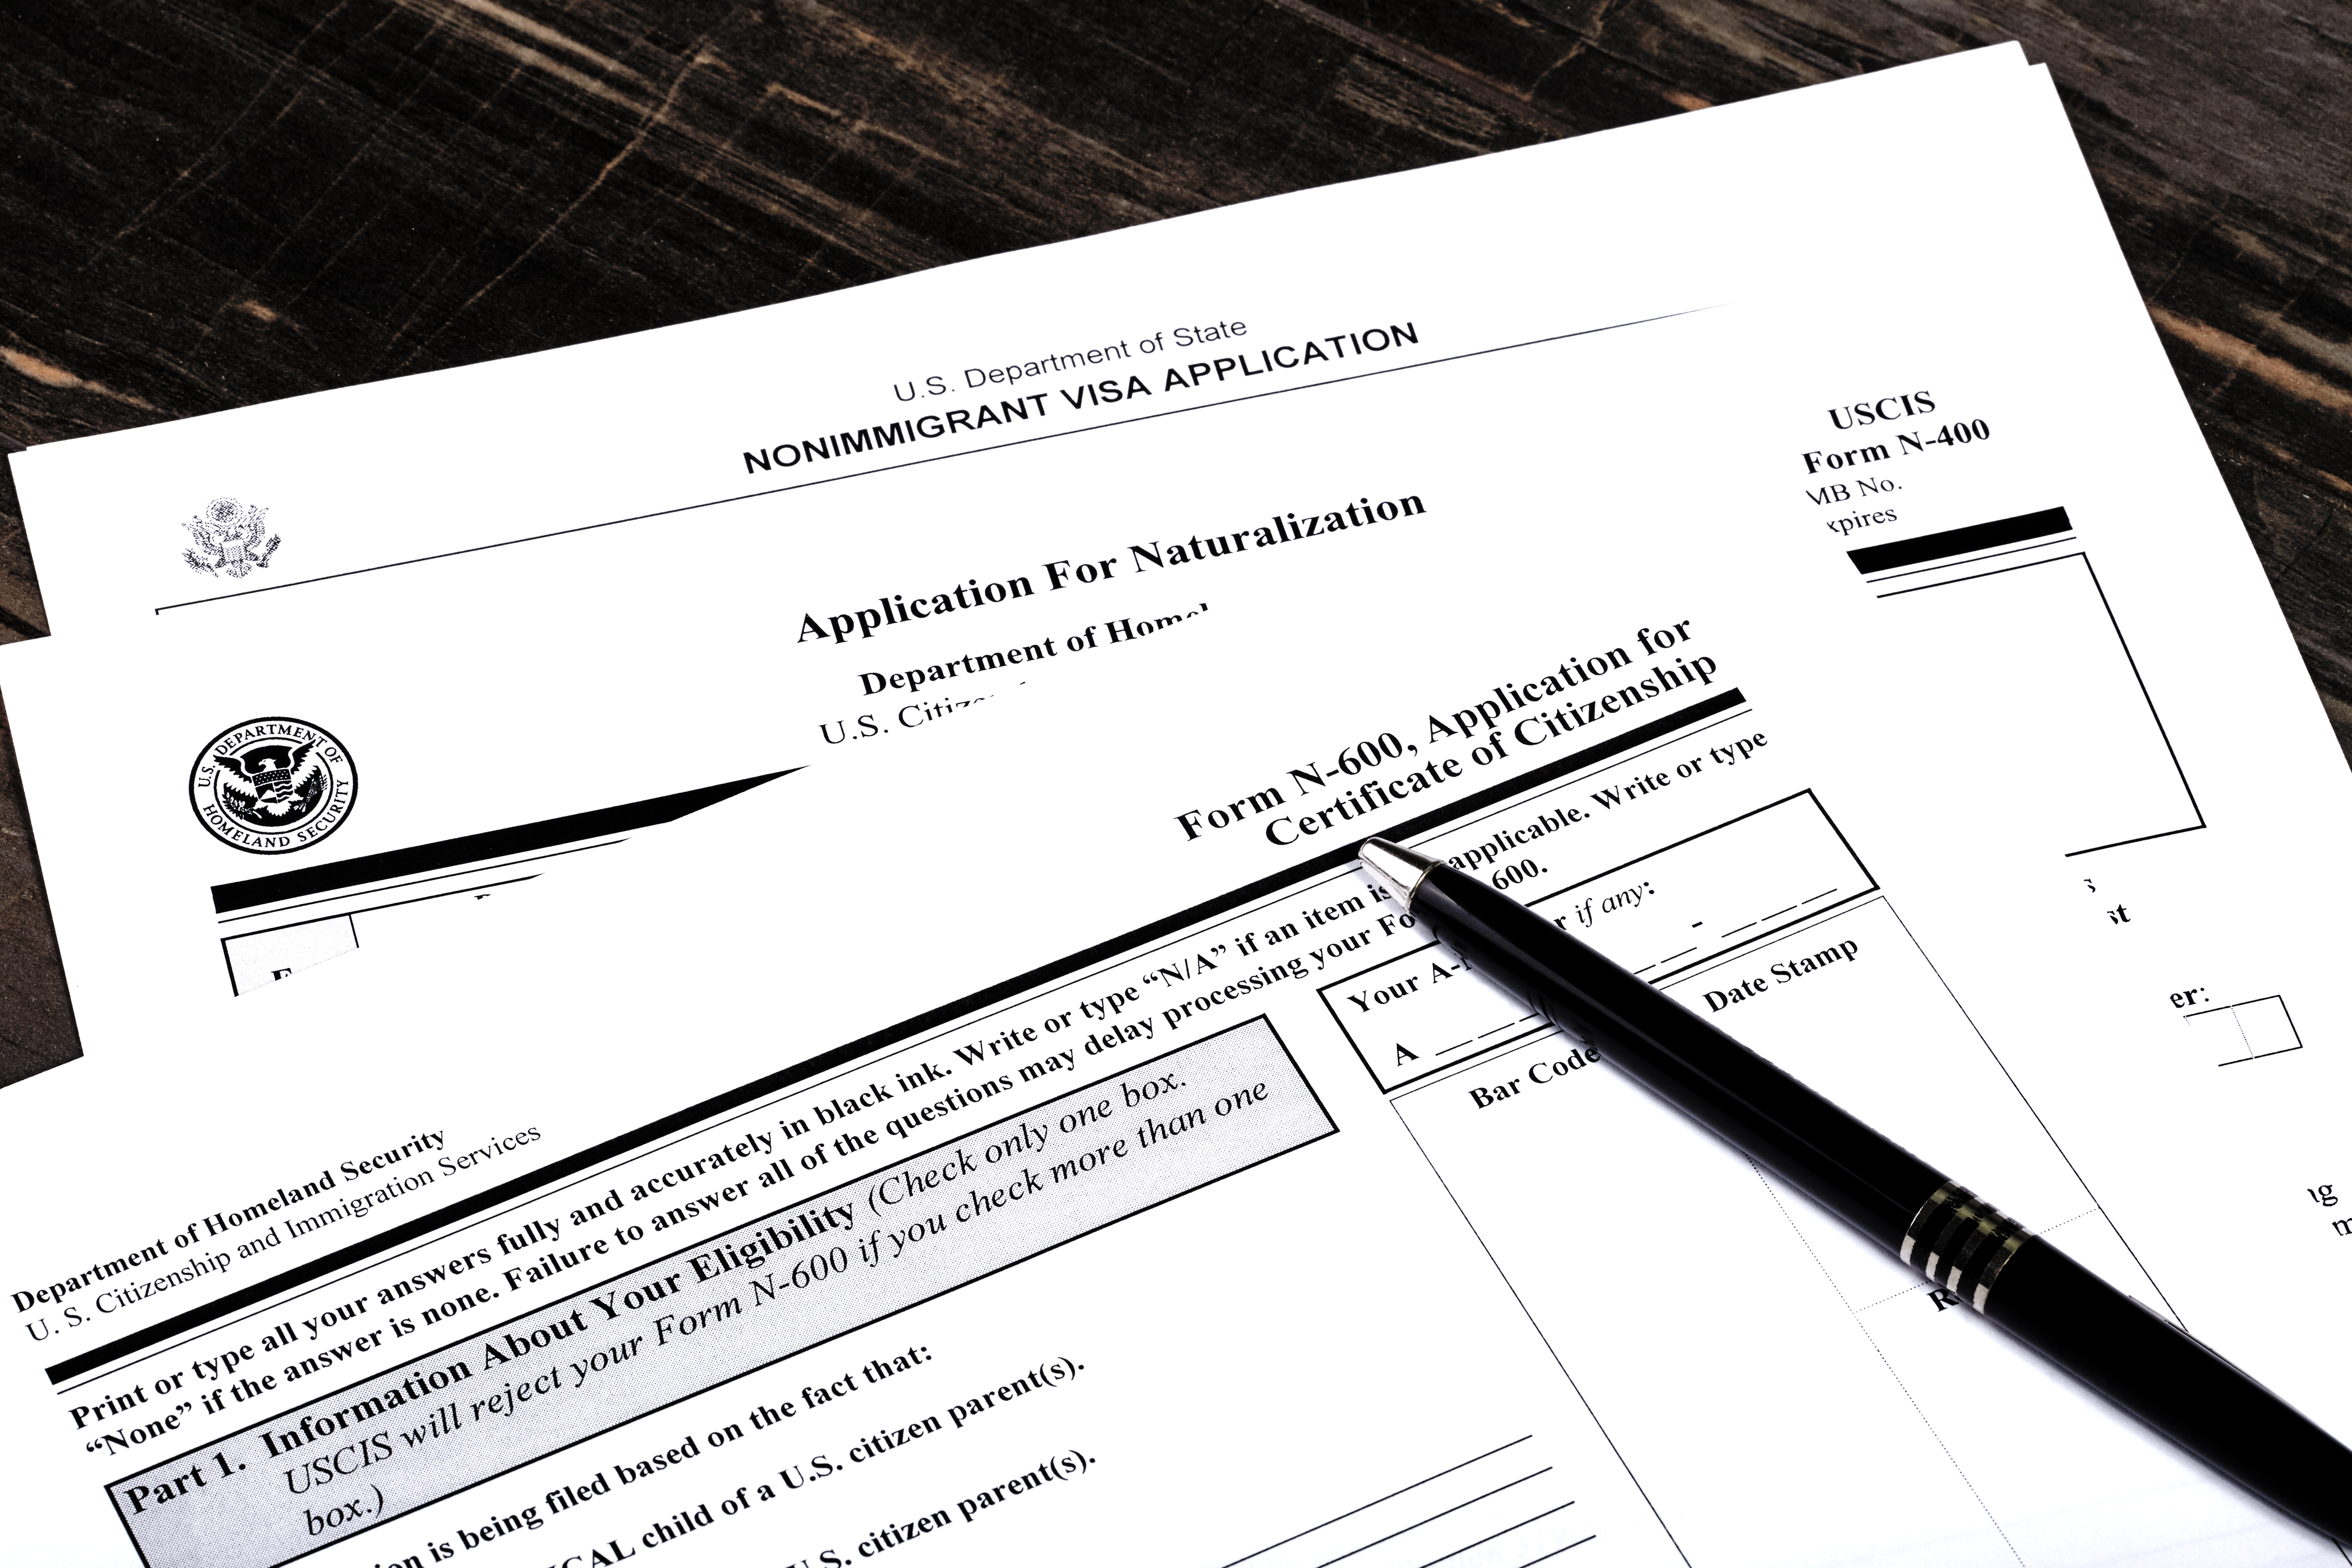 Can You Legally Change a Birthdate?